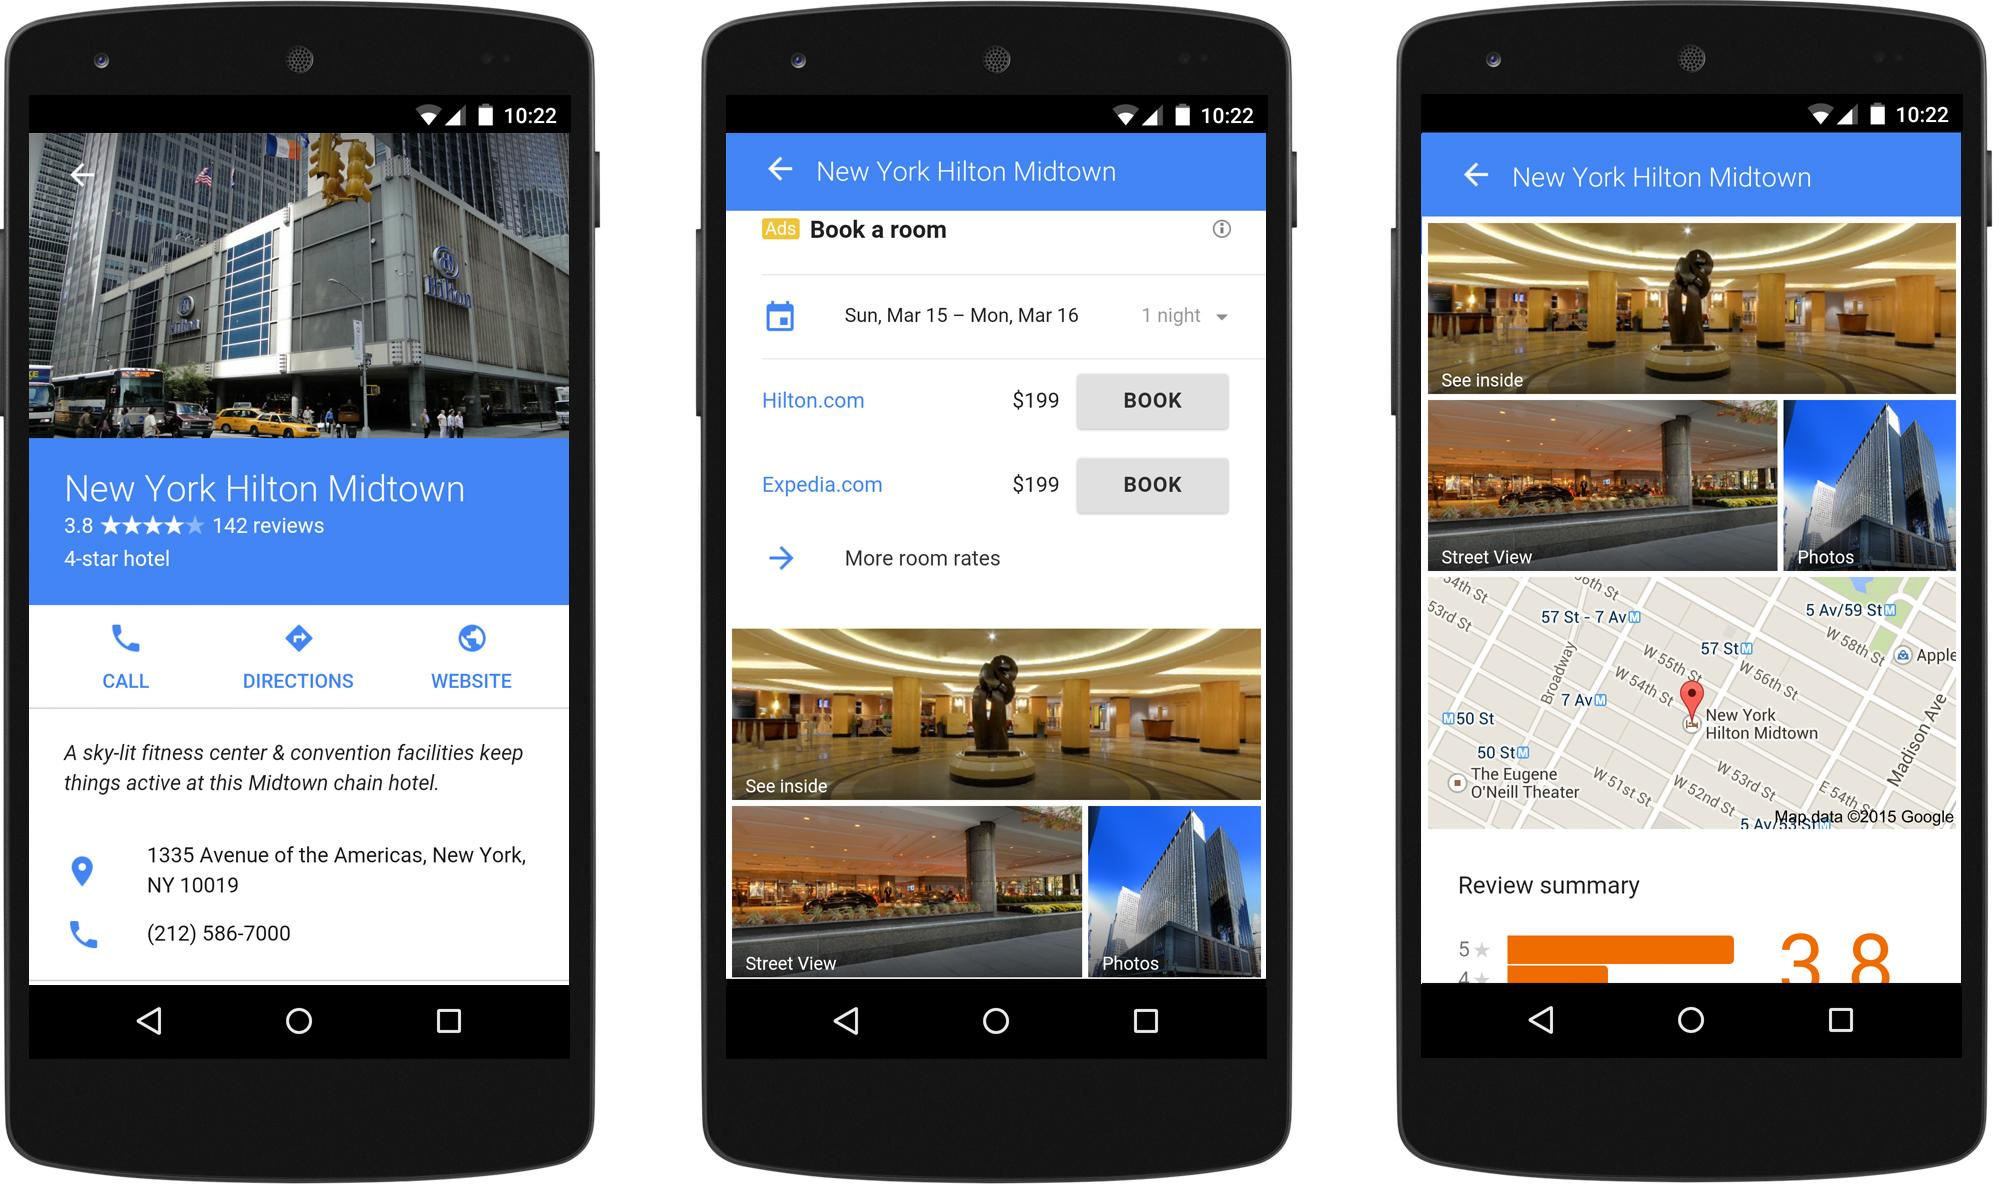 Mobile devices are now the main source of Google search traffic